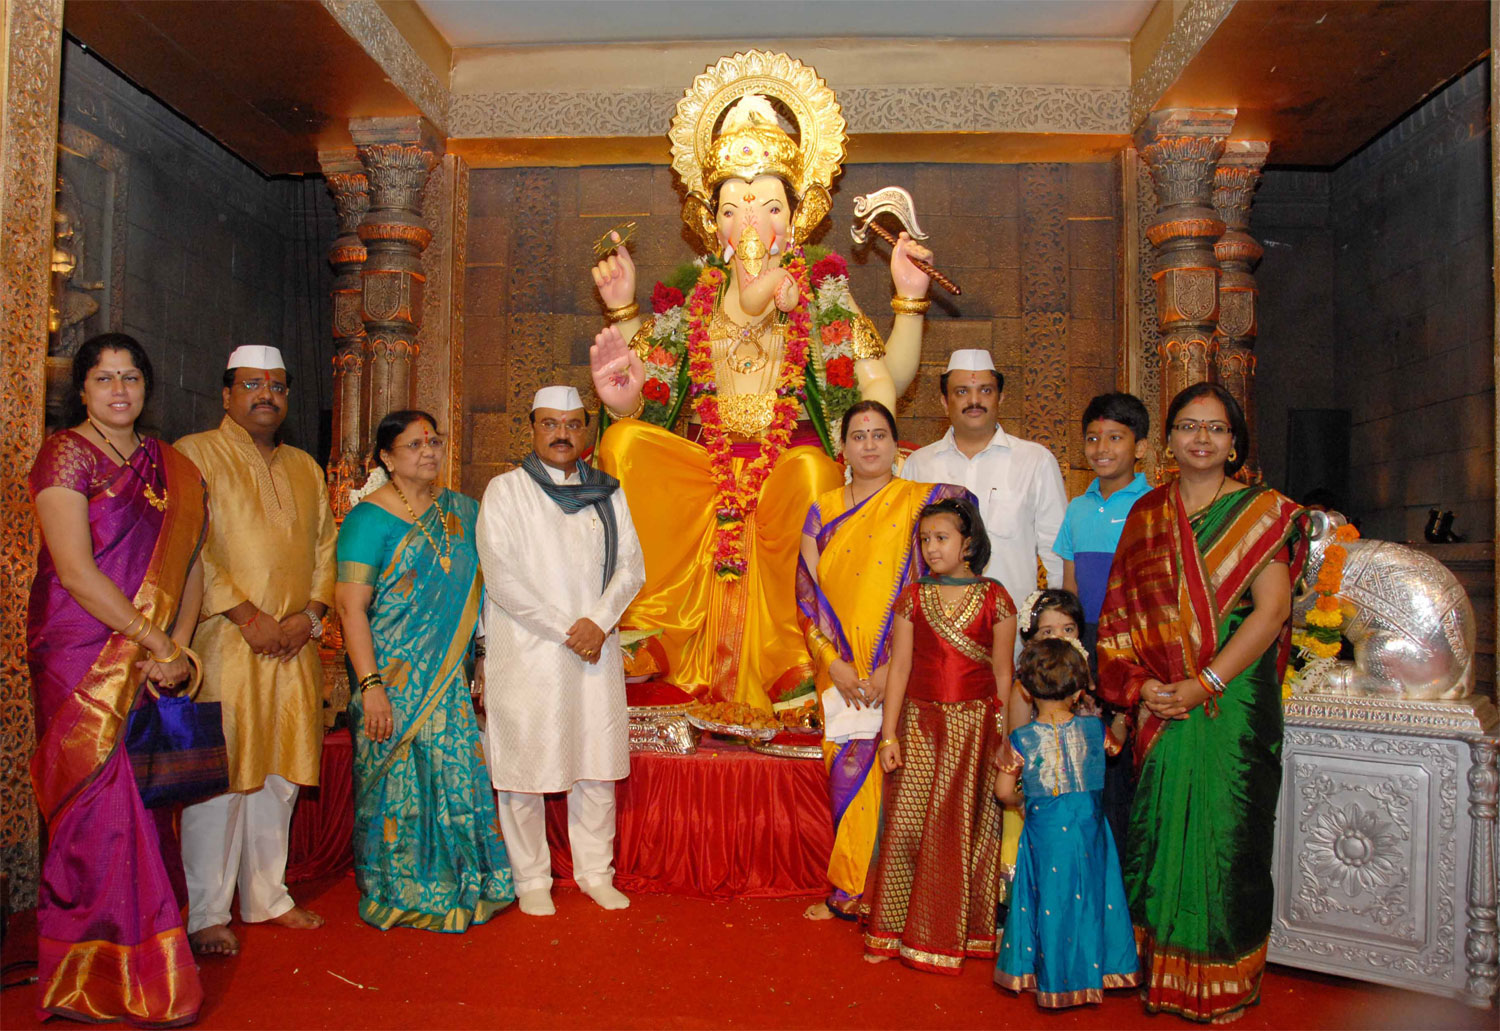 PWD MINISTER CHAGAN BHUJBAL DOING GANESH PUJA AT MAZGAON ANJIRWADI.